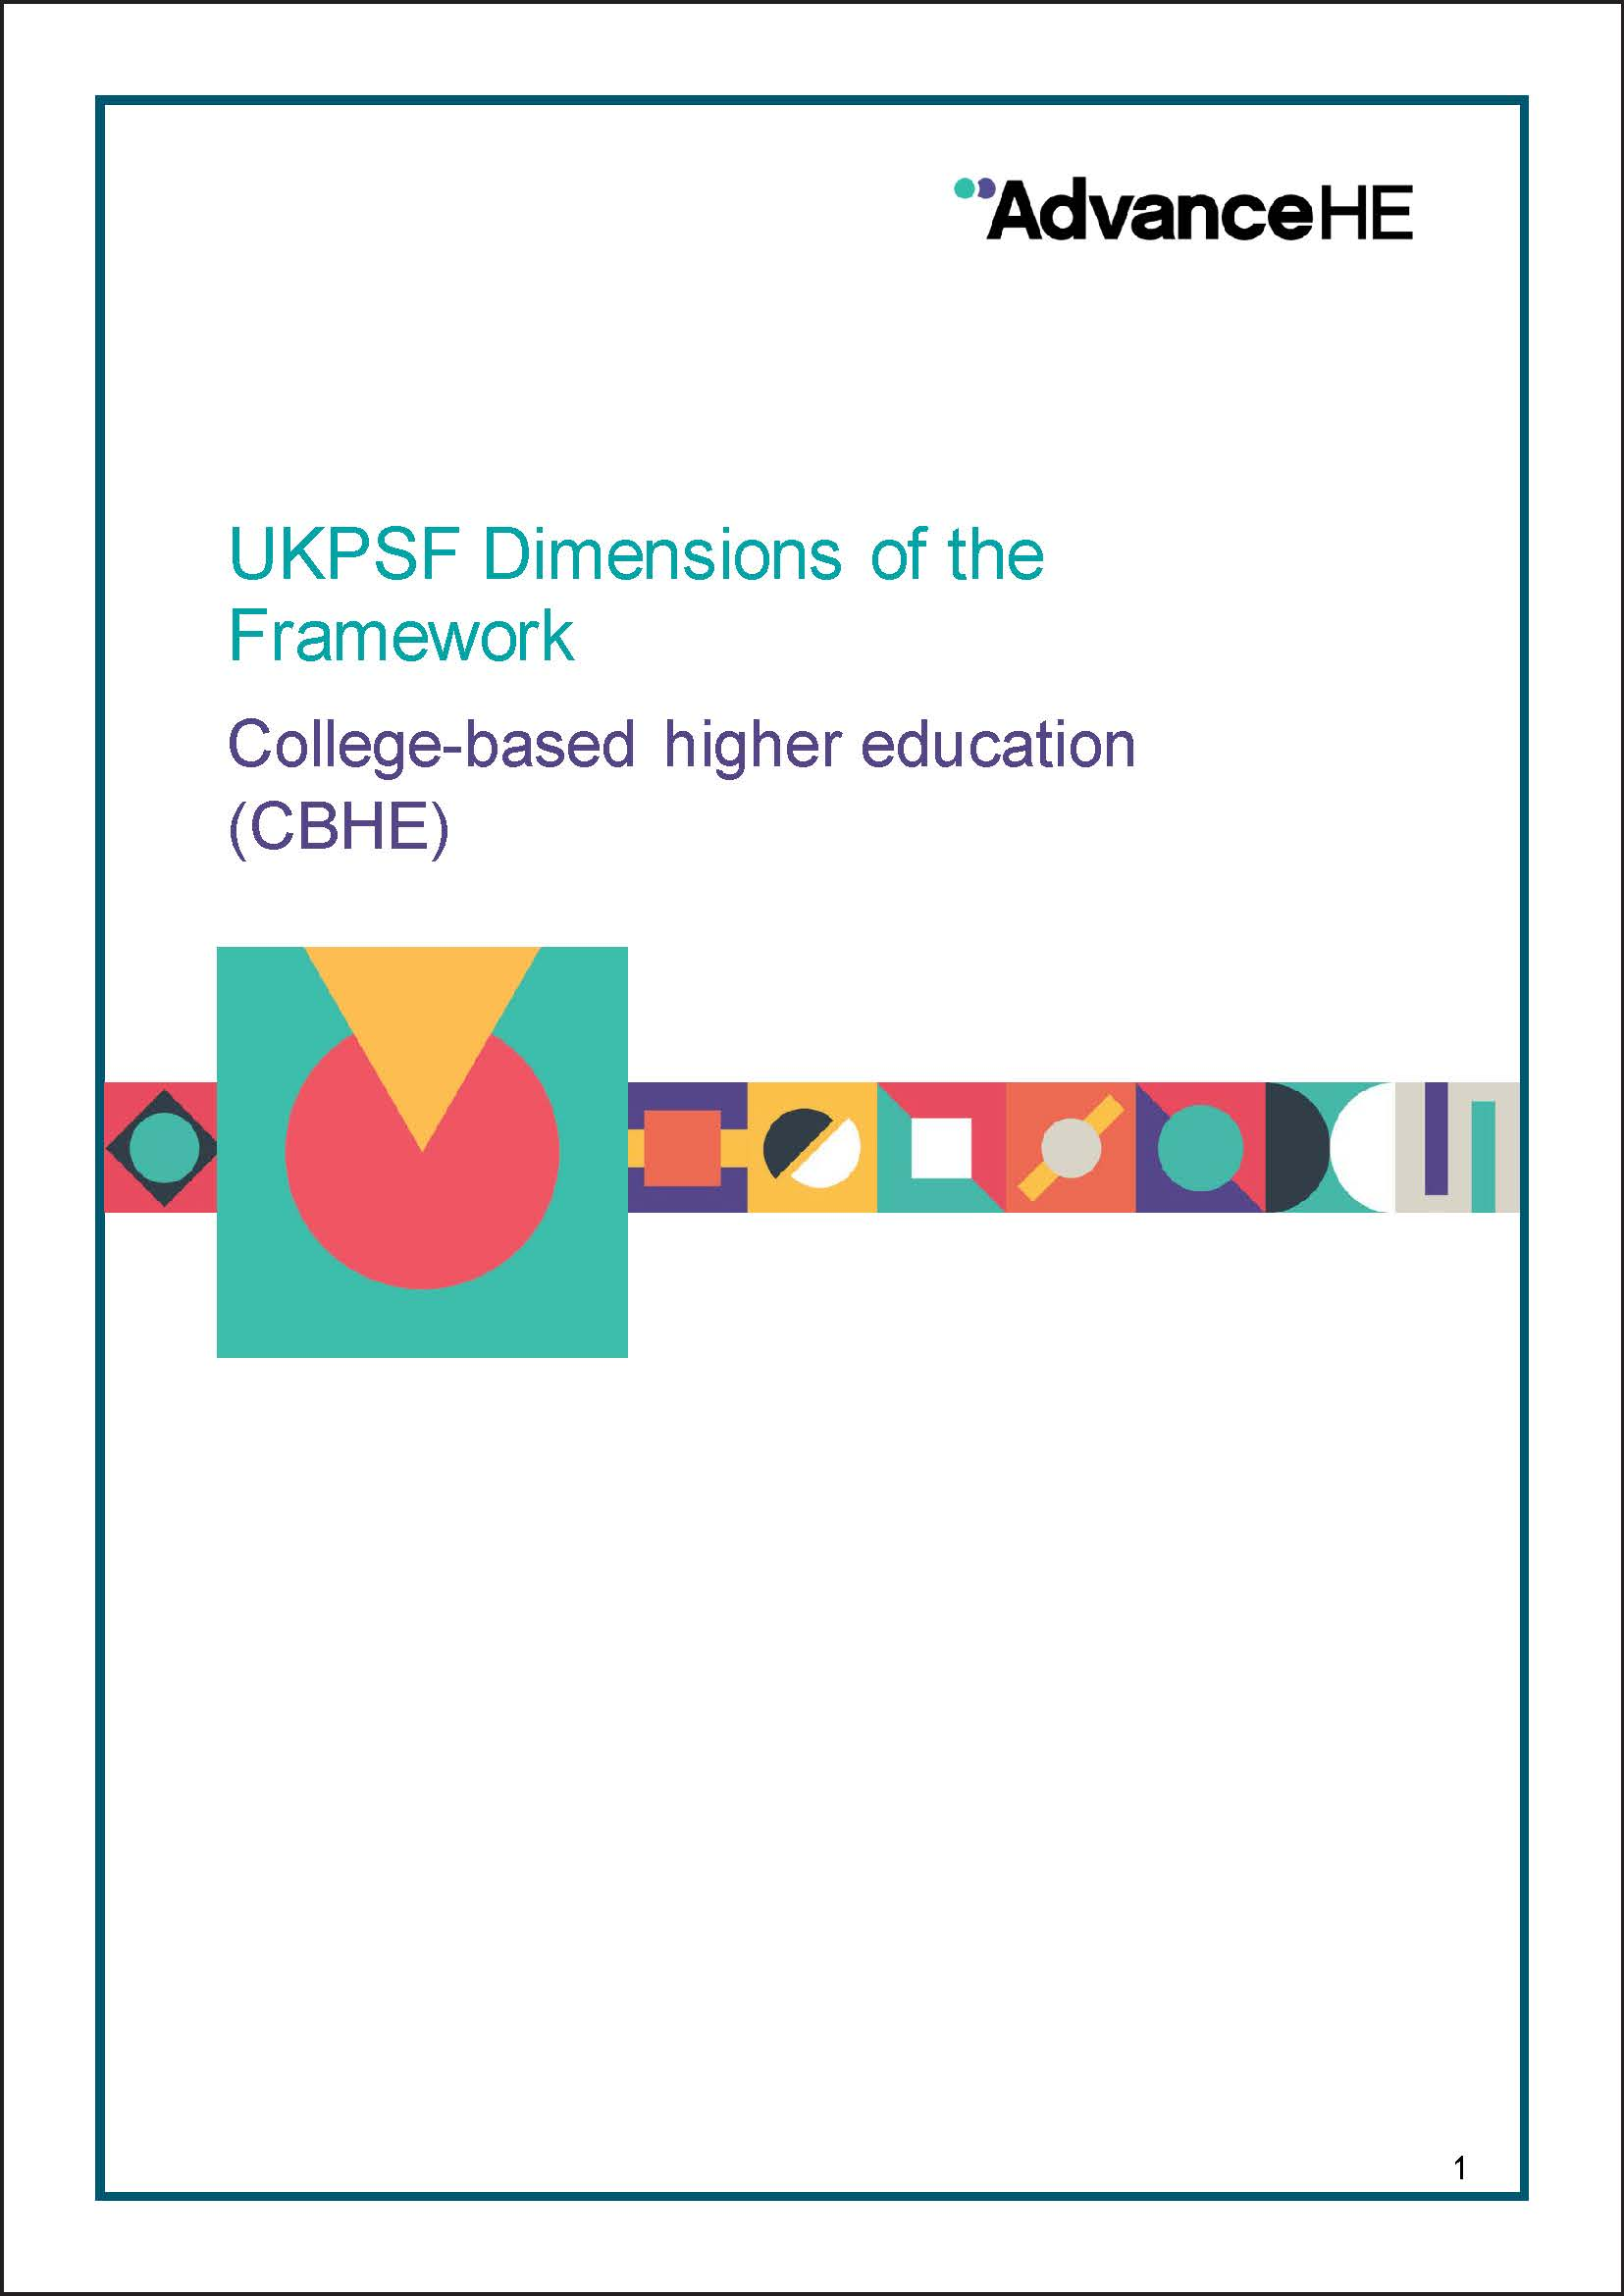 UKPSF Dimensions of the Framework – college-based higher education (CBHE)